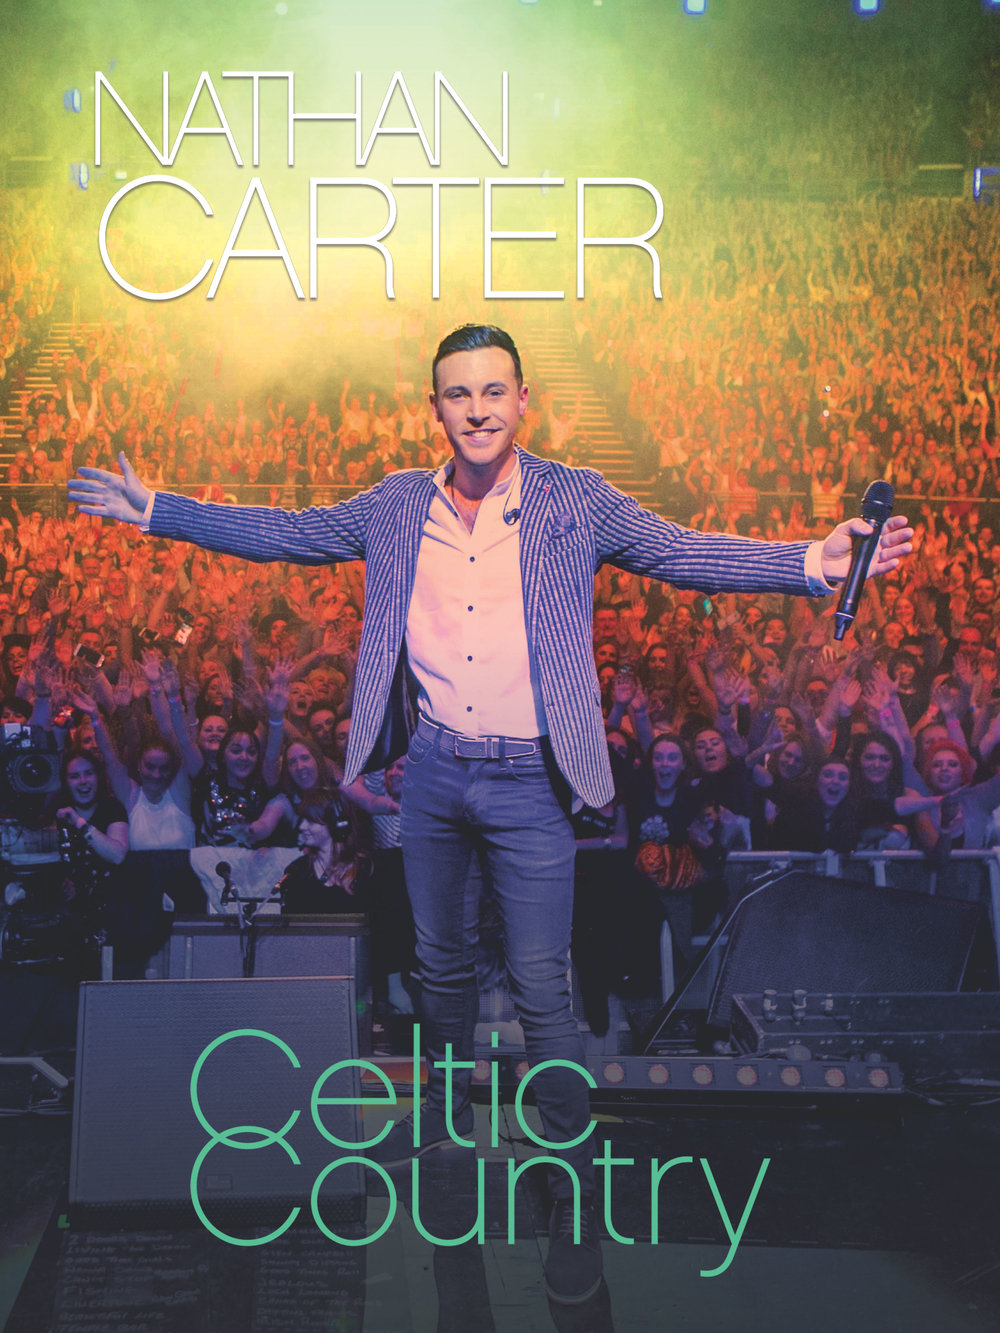 Nathan Carter - 'Celtic Country'